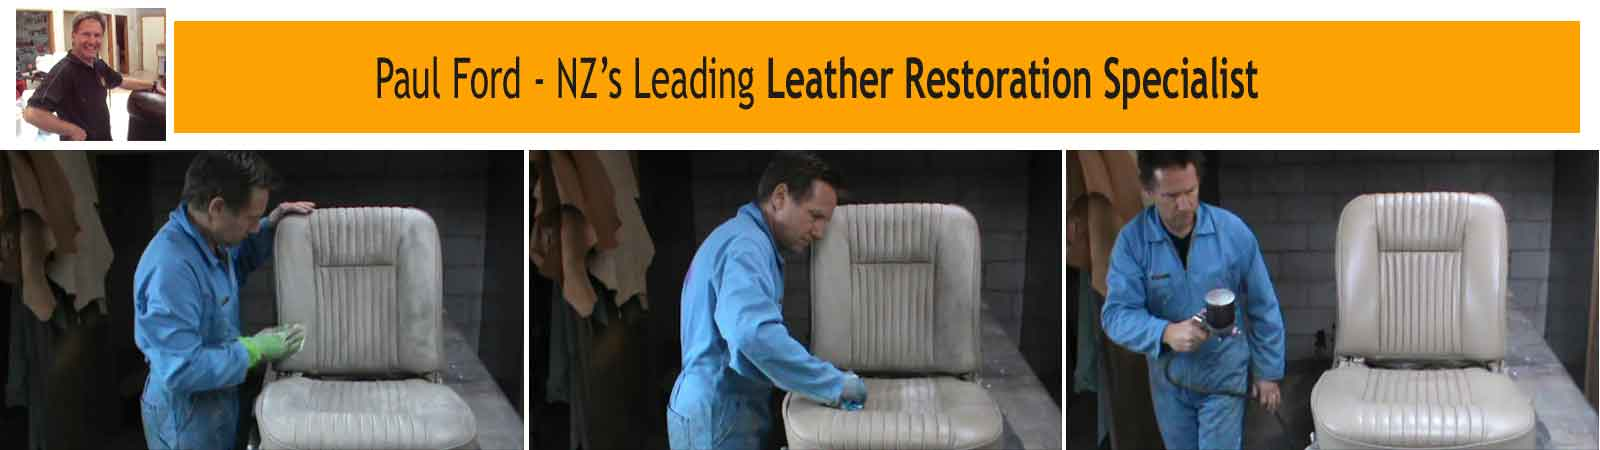 Leather repair and restoration specialist Paul Ford